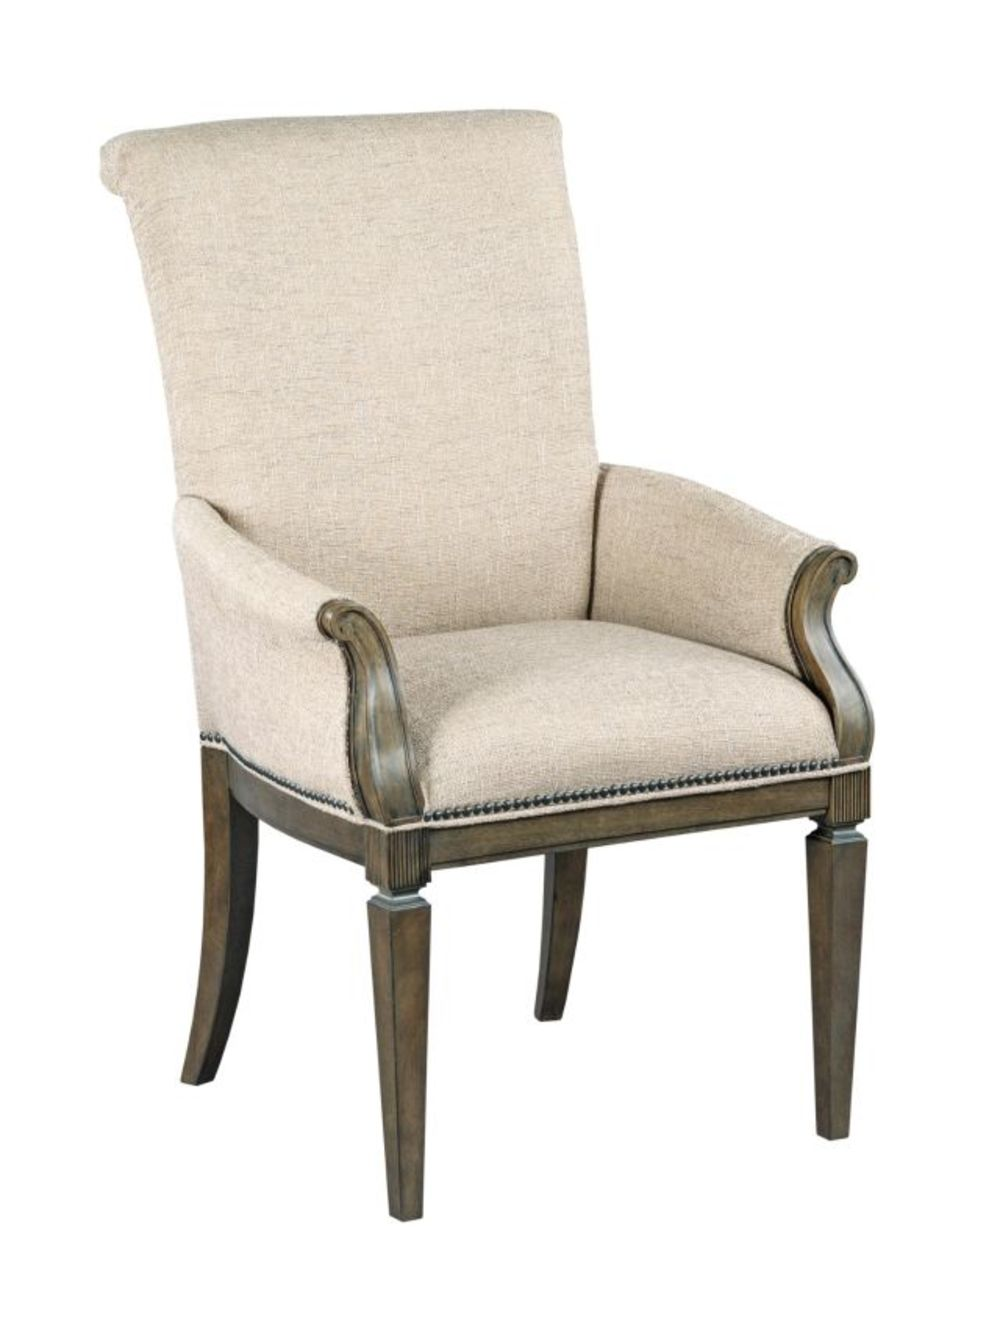 American Drew - Camille Upholstered Arm Chair